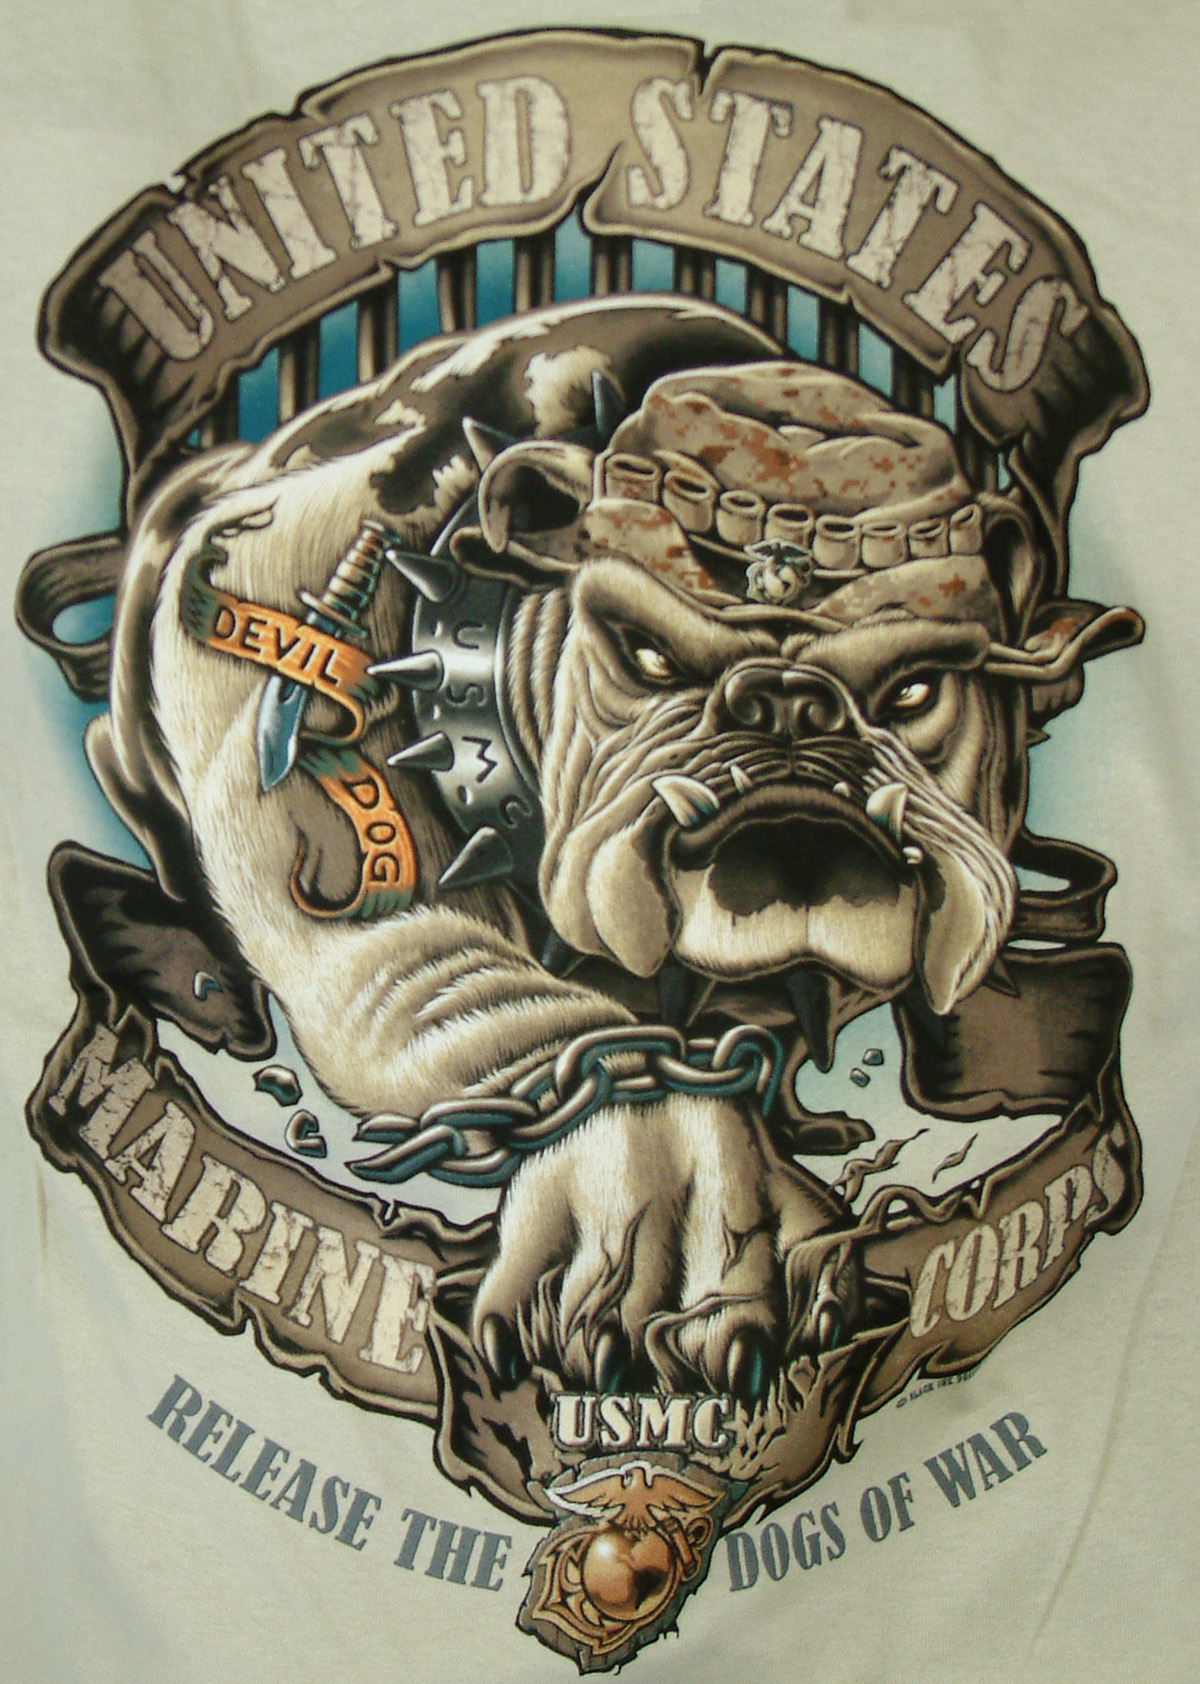 USMC Bulldog Tattoos Marine CorpsUsmc Bulldog Tattoo